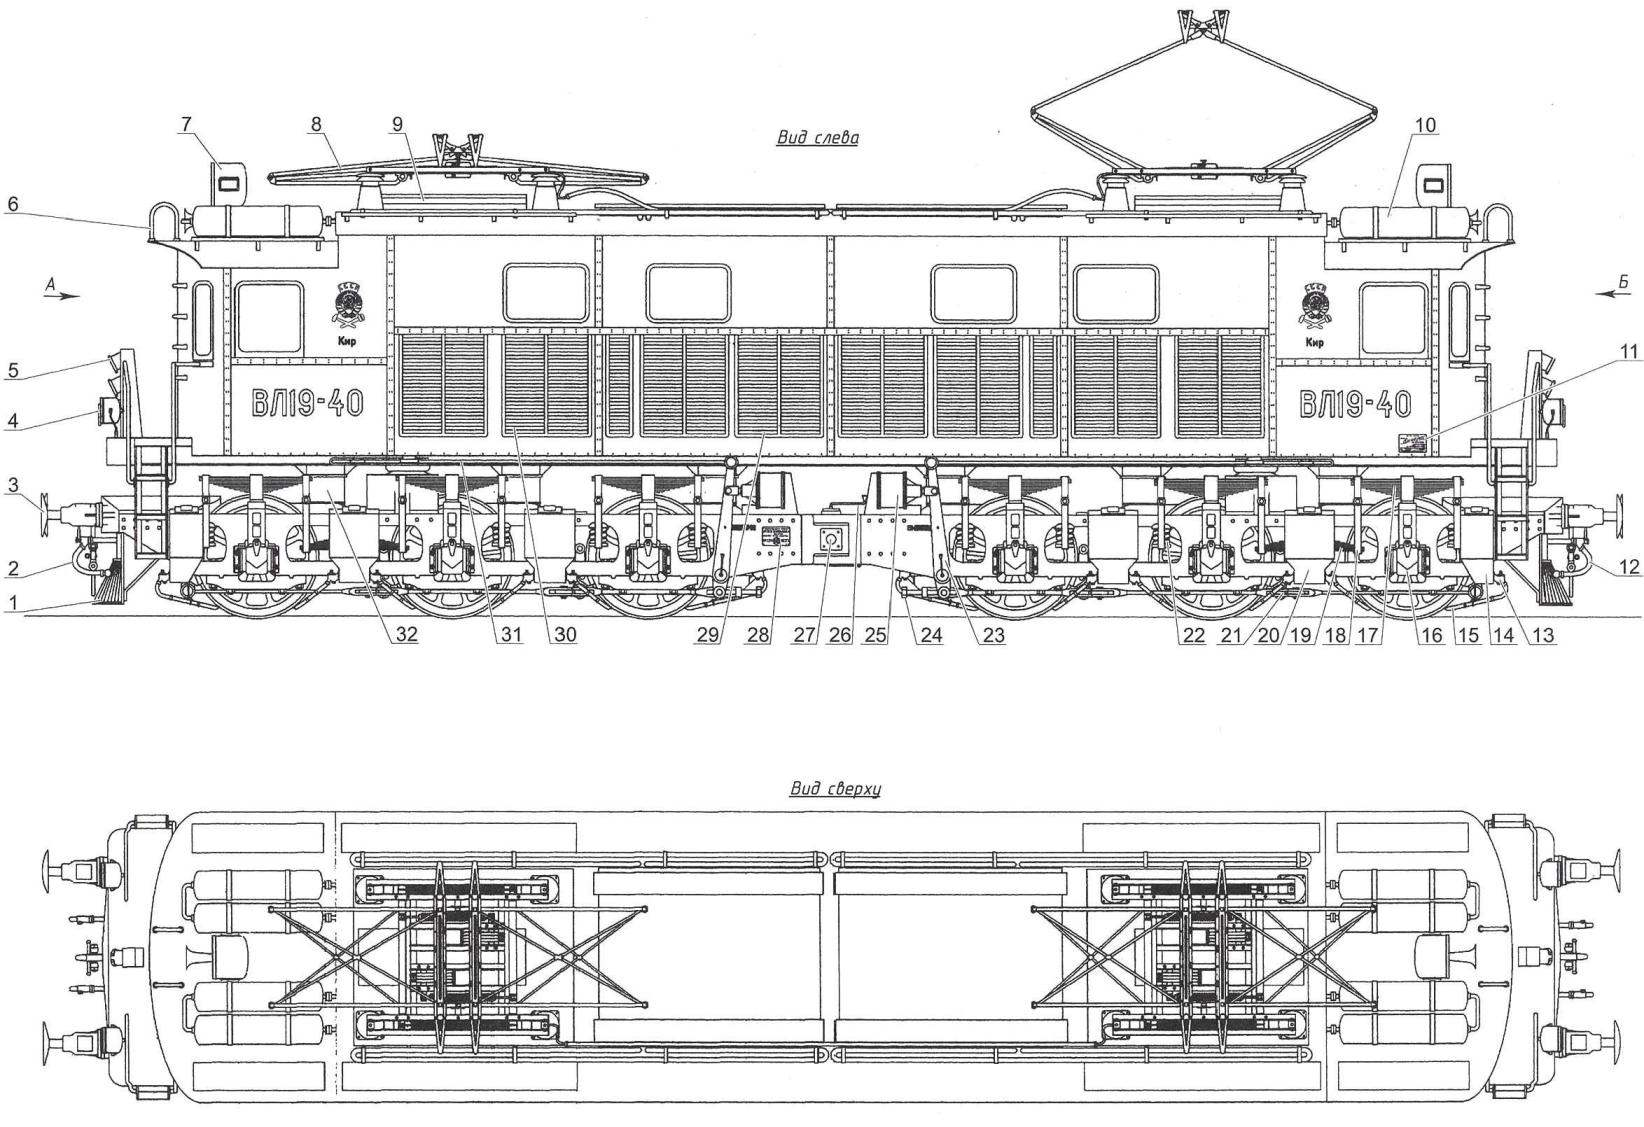 A Locomotive Without Steam And Smoke